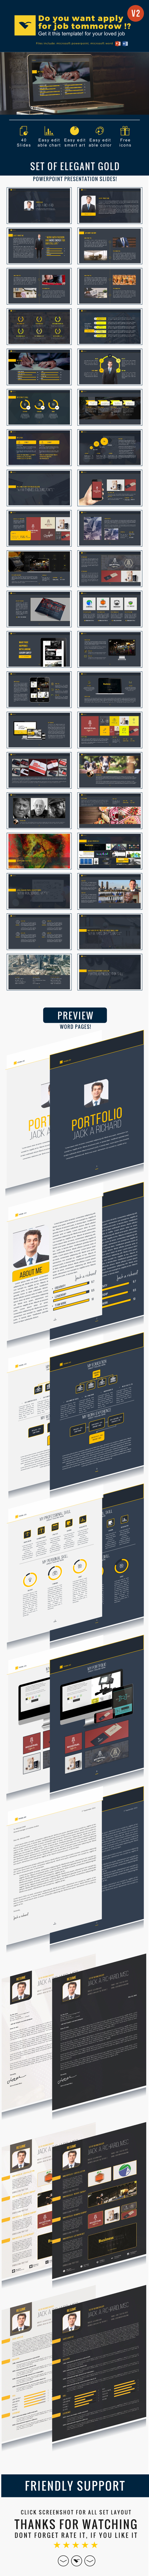 Personal Portfolio Powerpoint Word Template On Behance